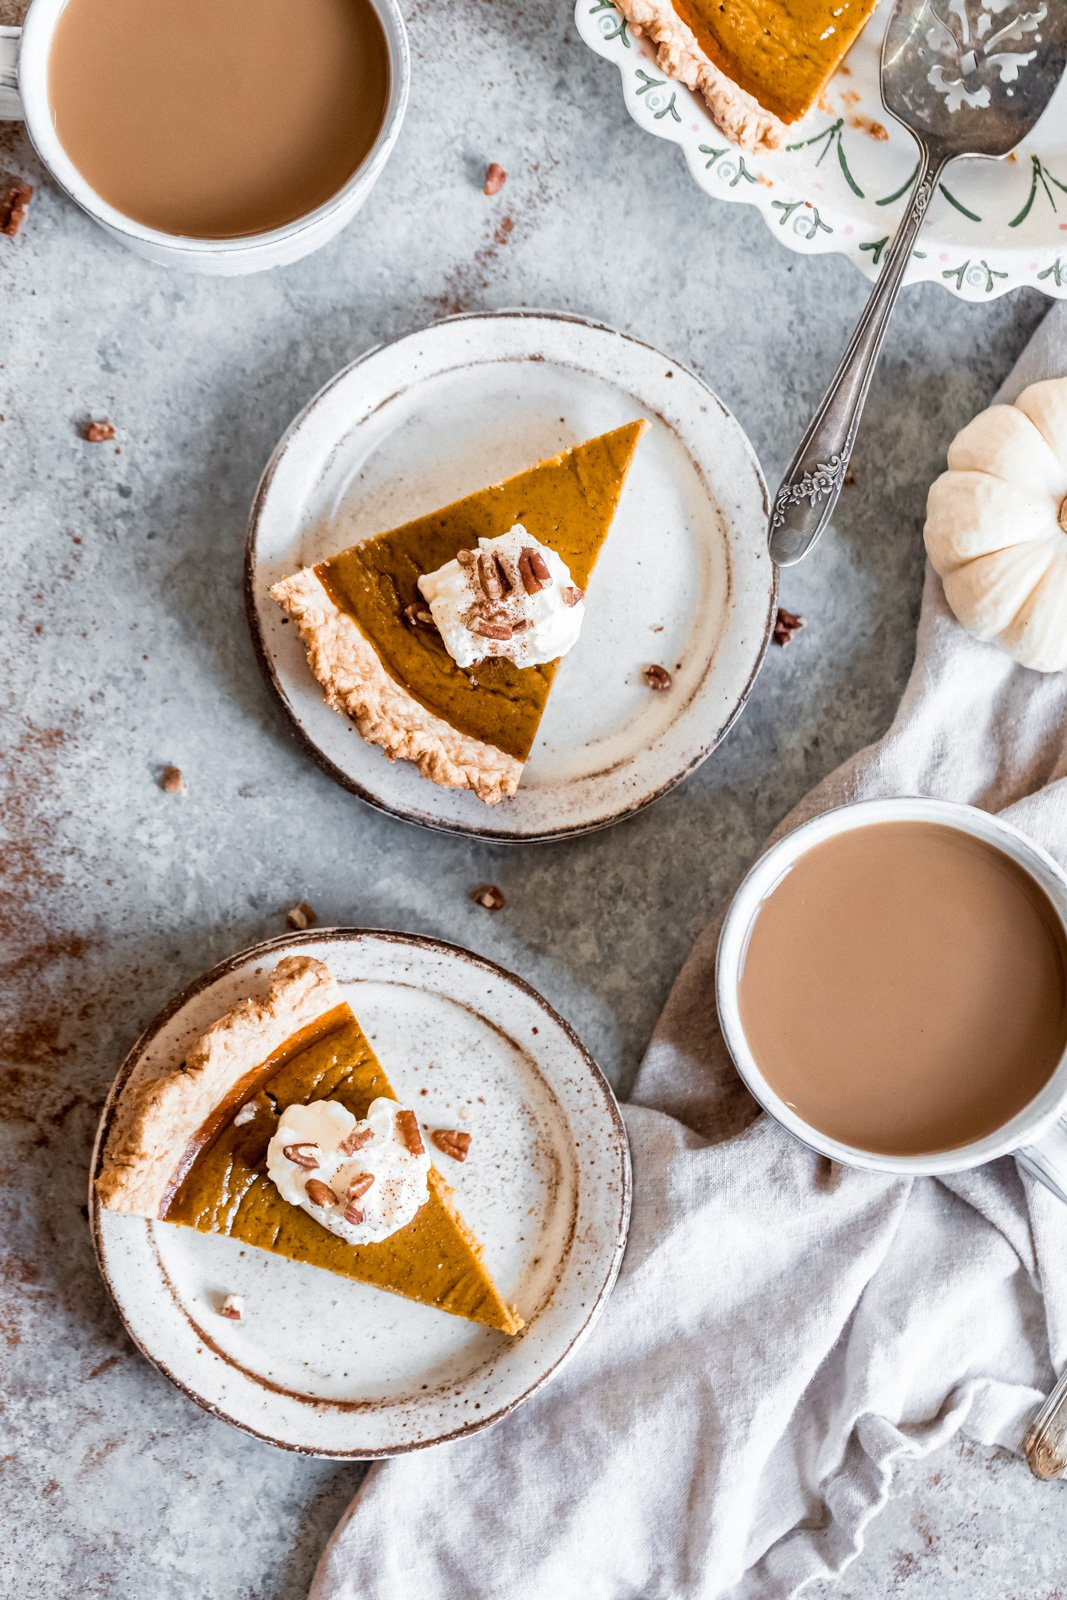 Creamy, healthier pumpkin pie from scratch that naturally sweetened with pure maple syrup. This easy-to-make pumpkin pie recipe will knock your socks off! Serve with dairy free or regular ice cream, or a little whipped cream for a treat.